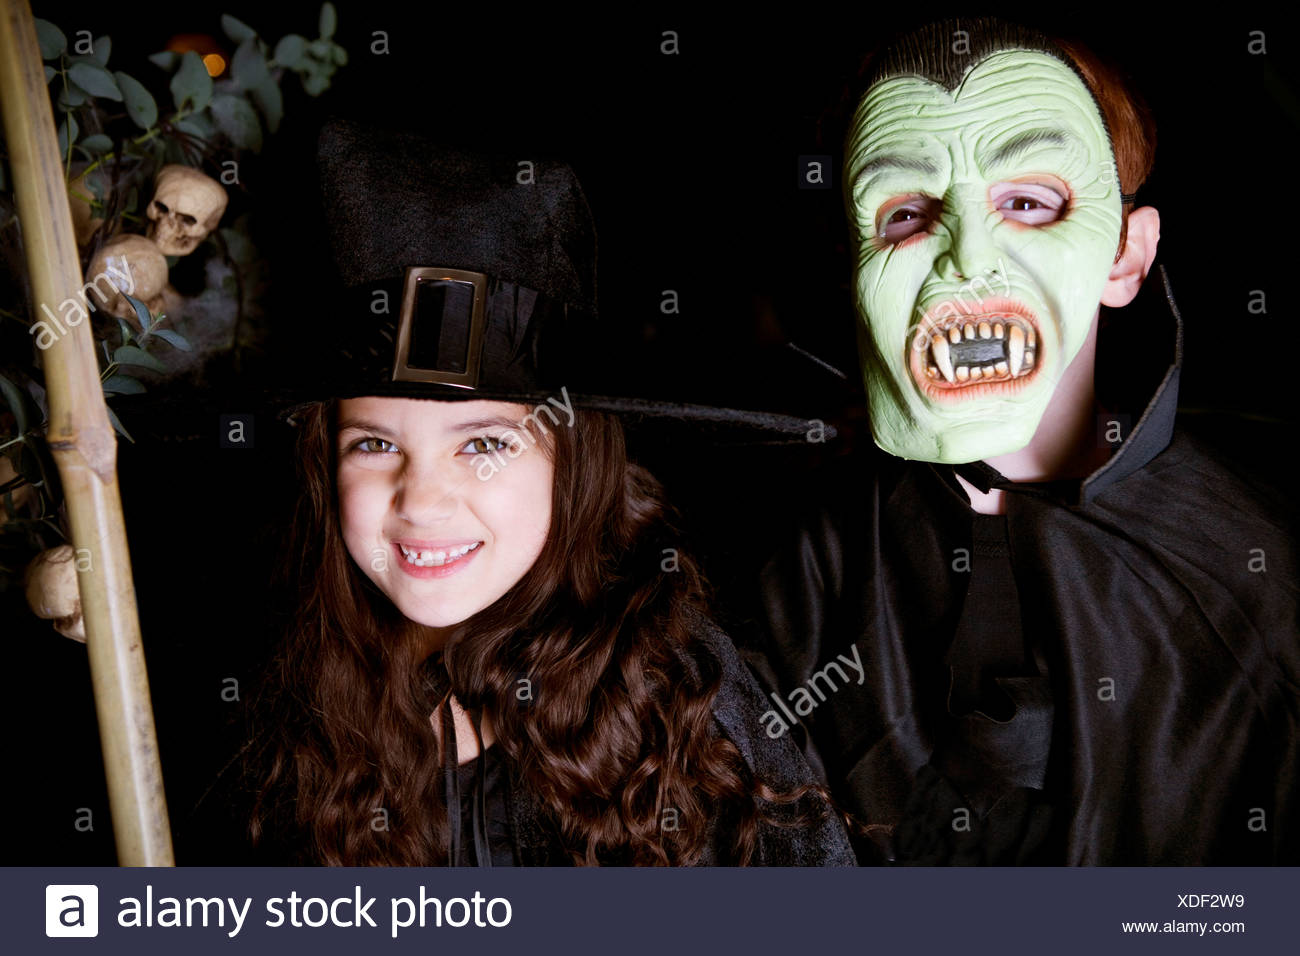 children in scary halloween costumes stock photo: 283687973 - alamy